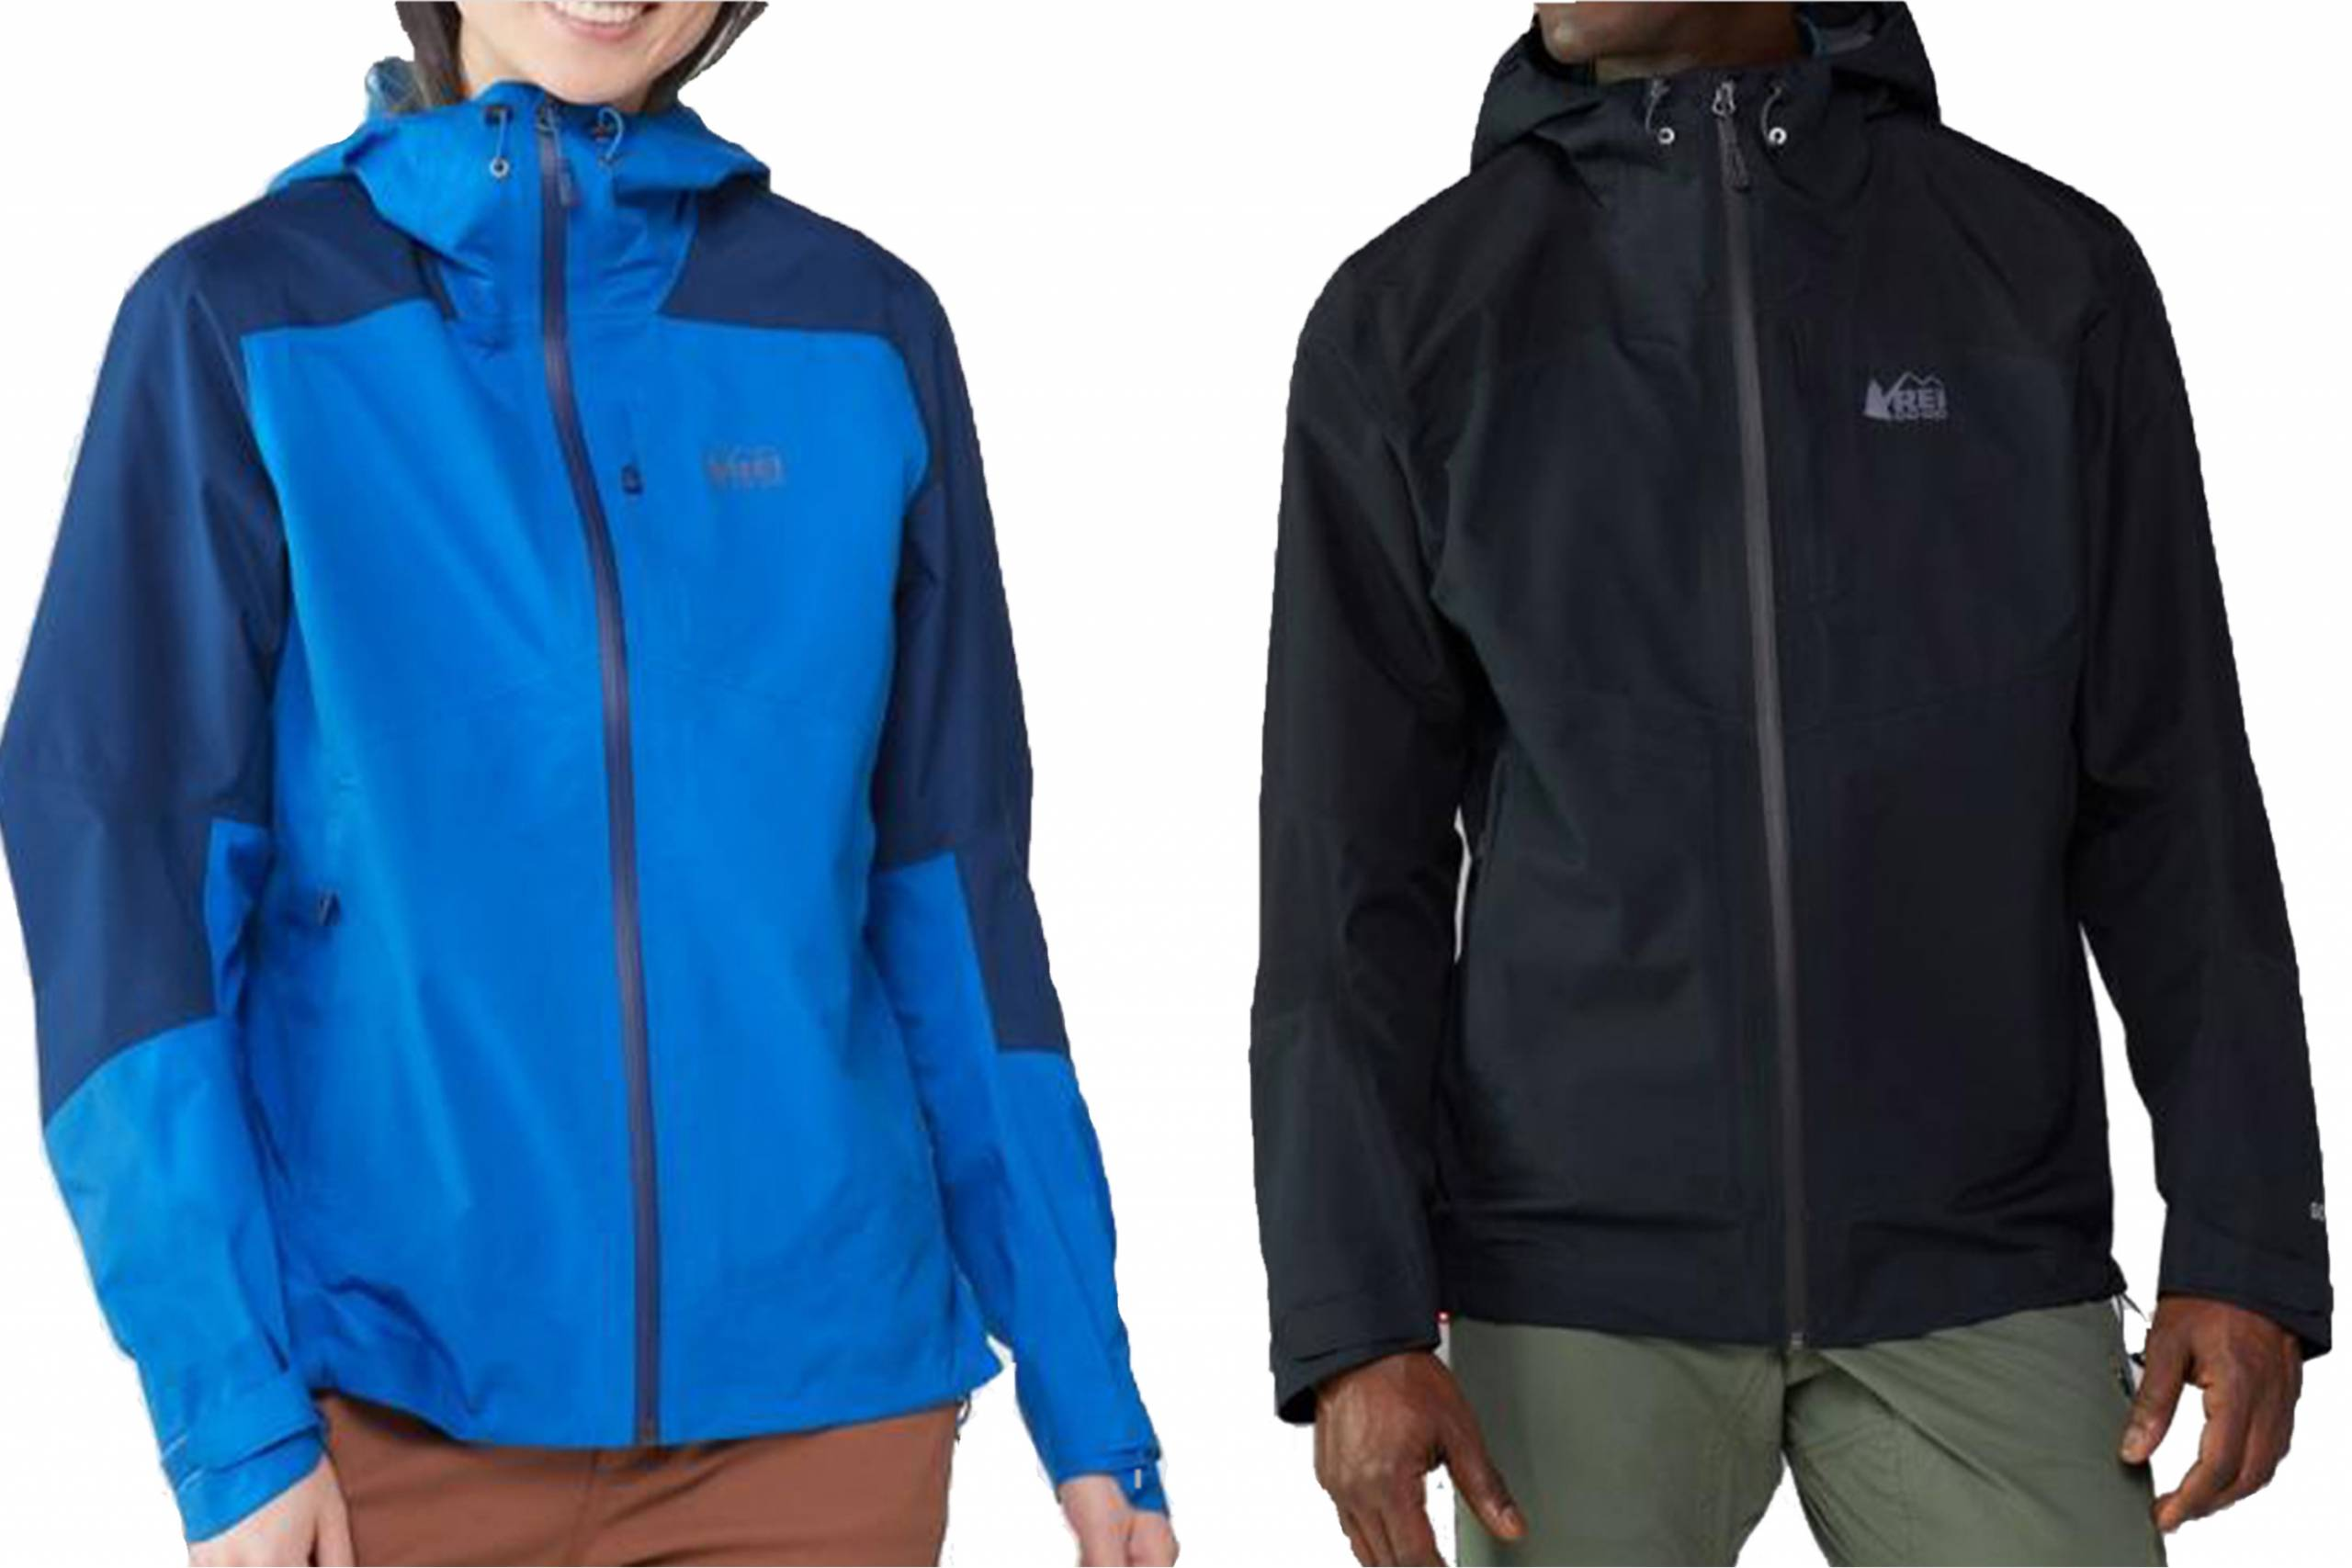 REI rain jackets on female and male models side by side